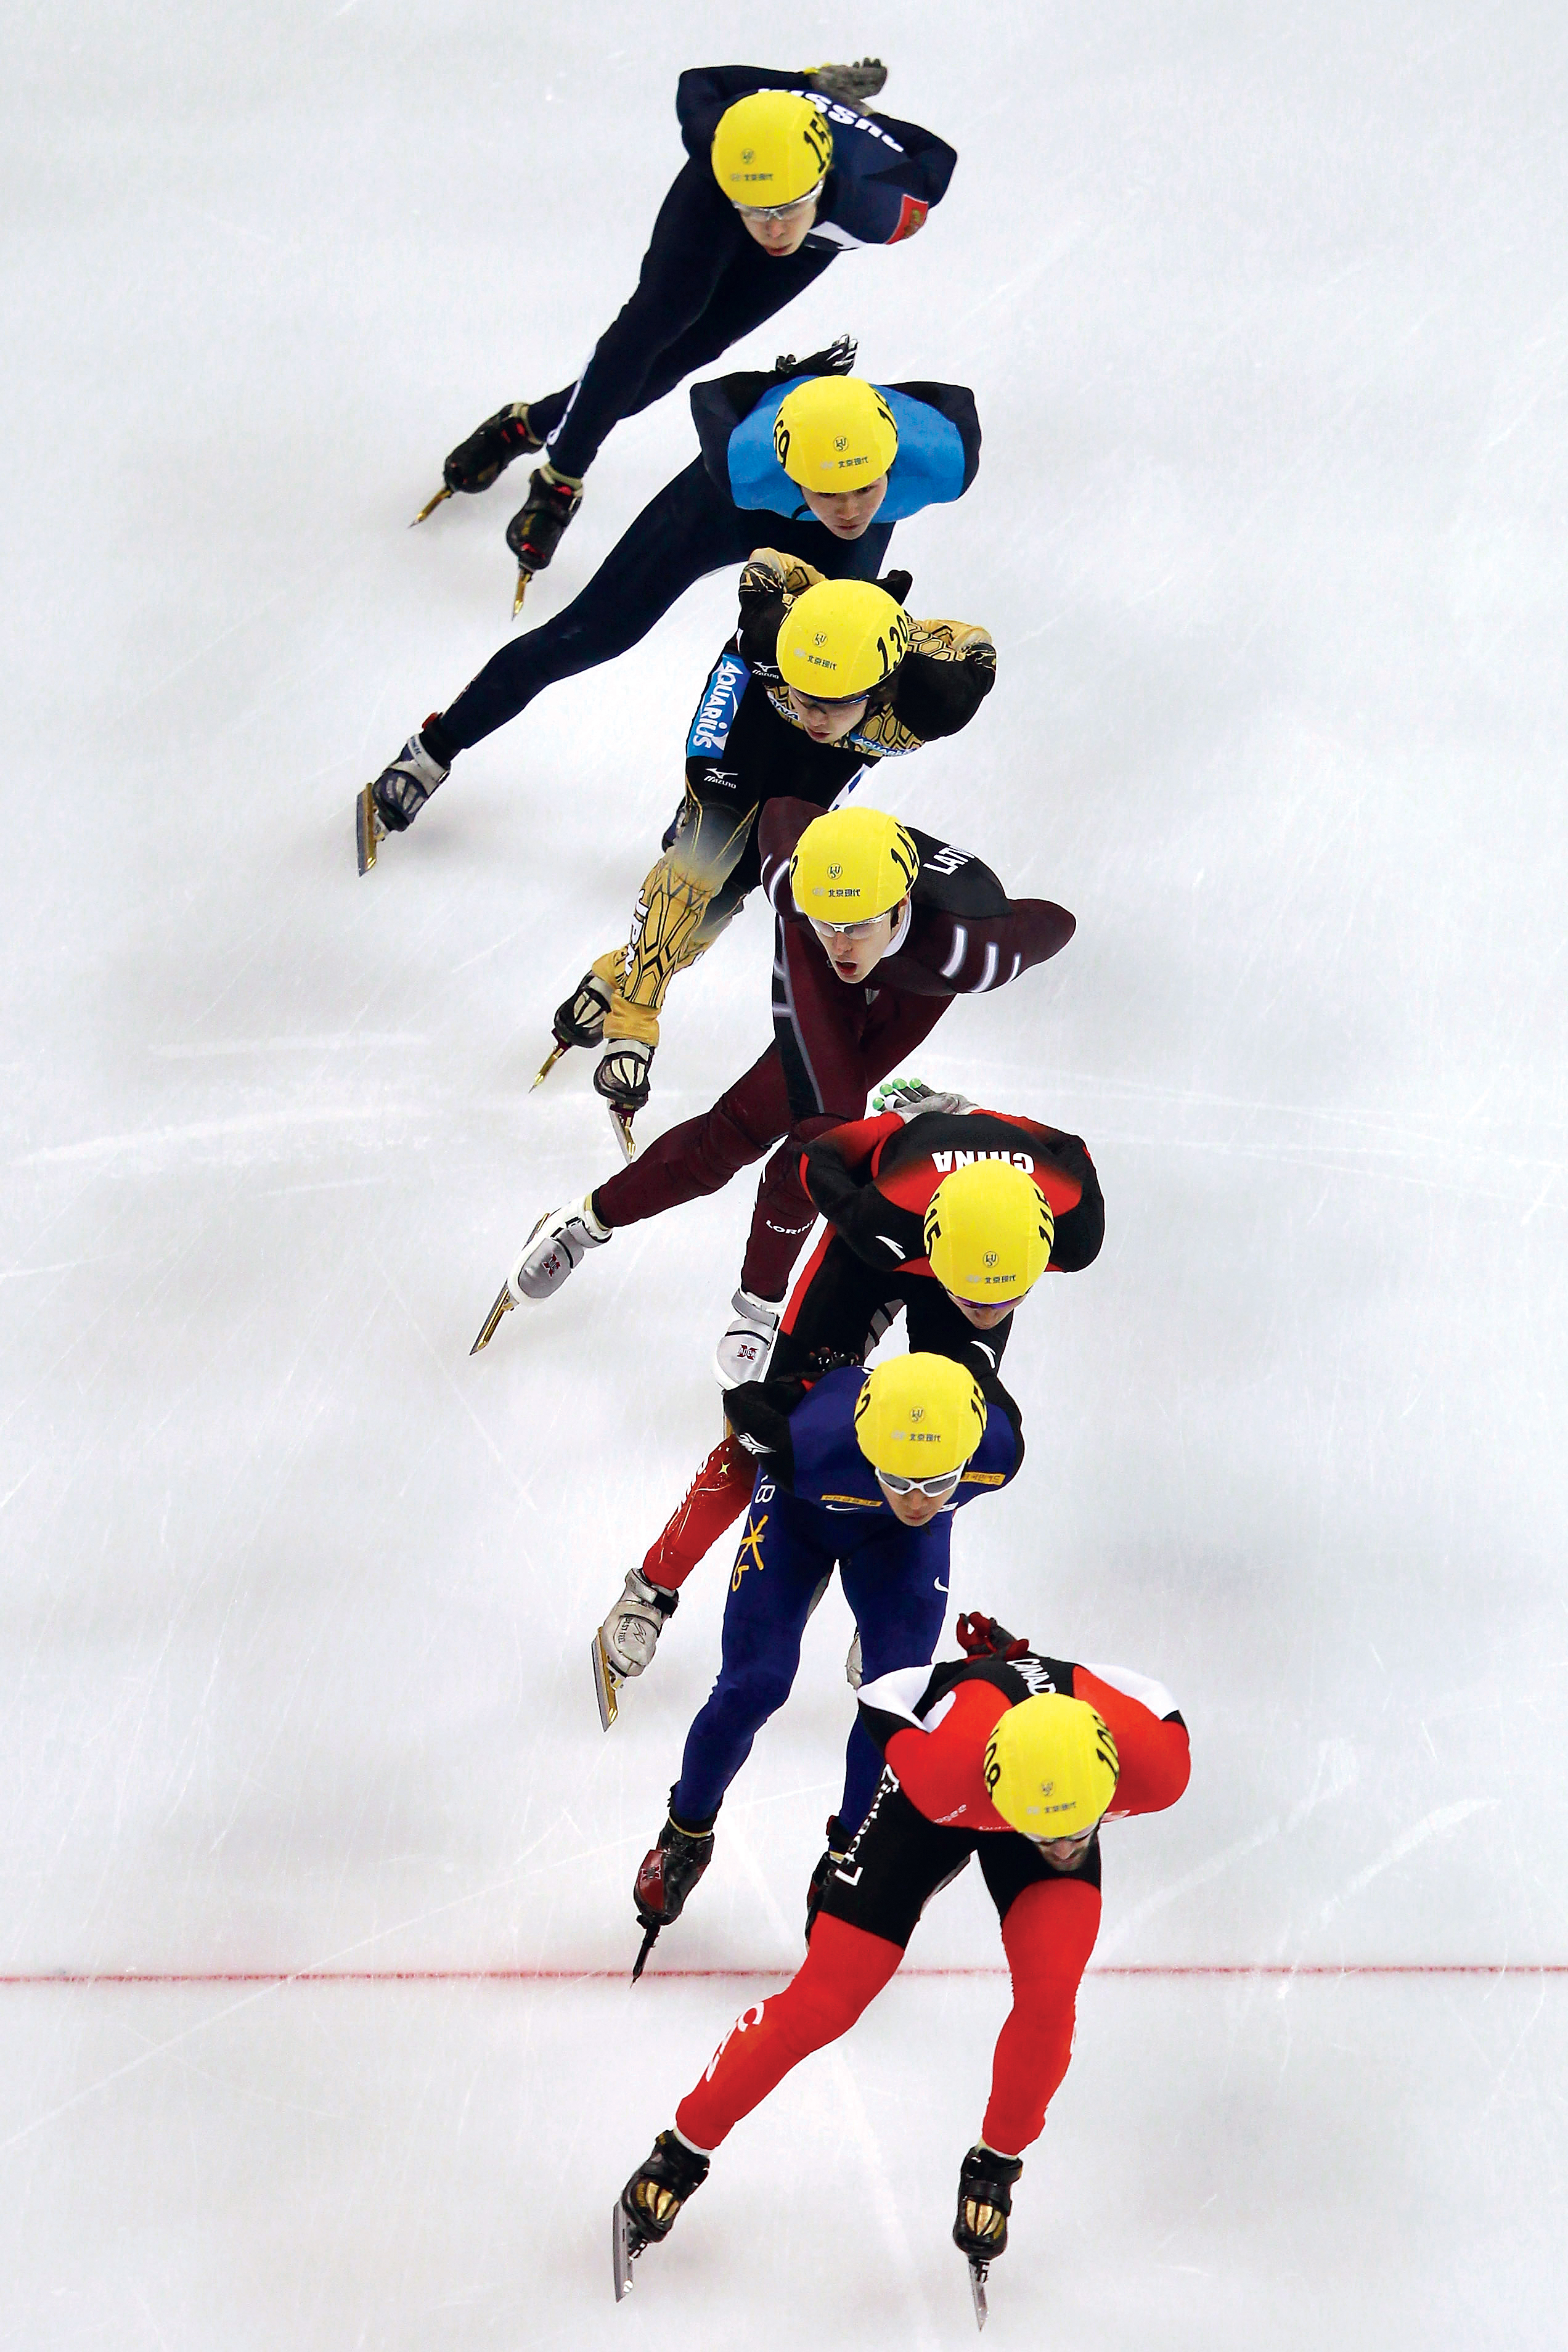 Cho, second from top, skating at the 2012 World Championships in Shanghai. Not long afterward, he was suspended from the sport for bending an opponent's skates. He never returned. Photograph by Lintao Zhang/Getty Images.